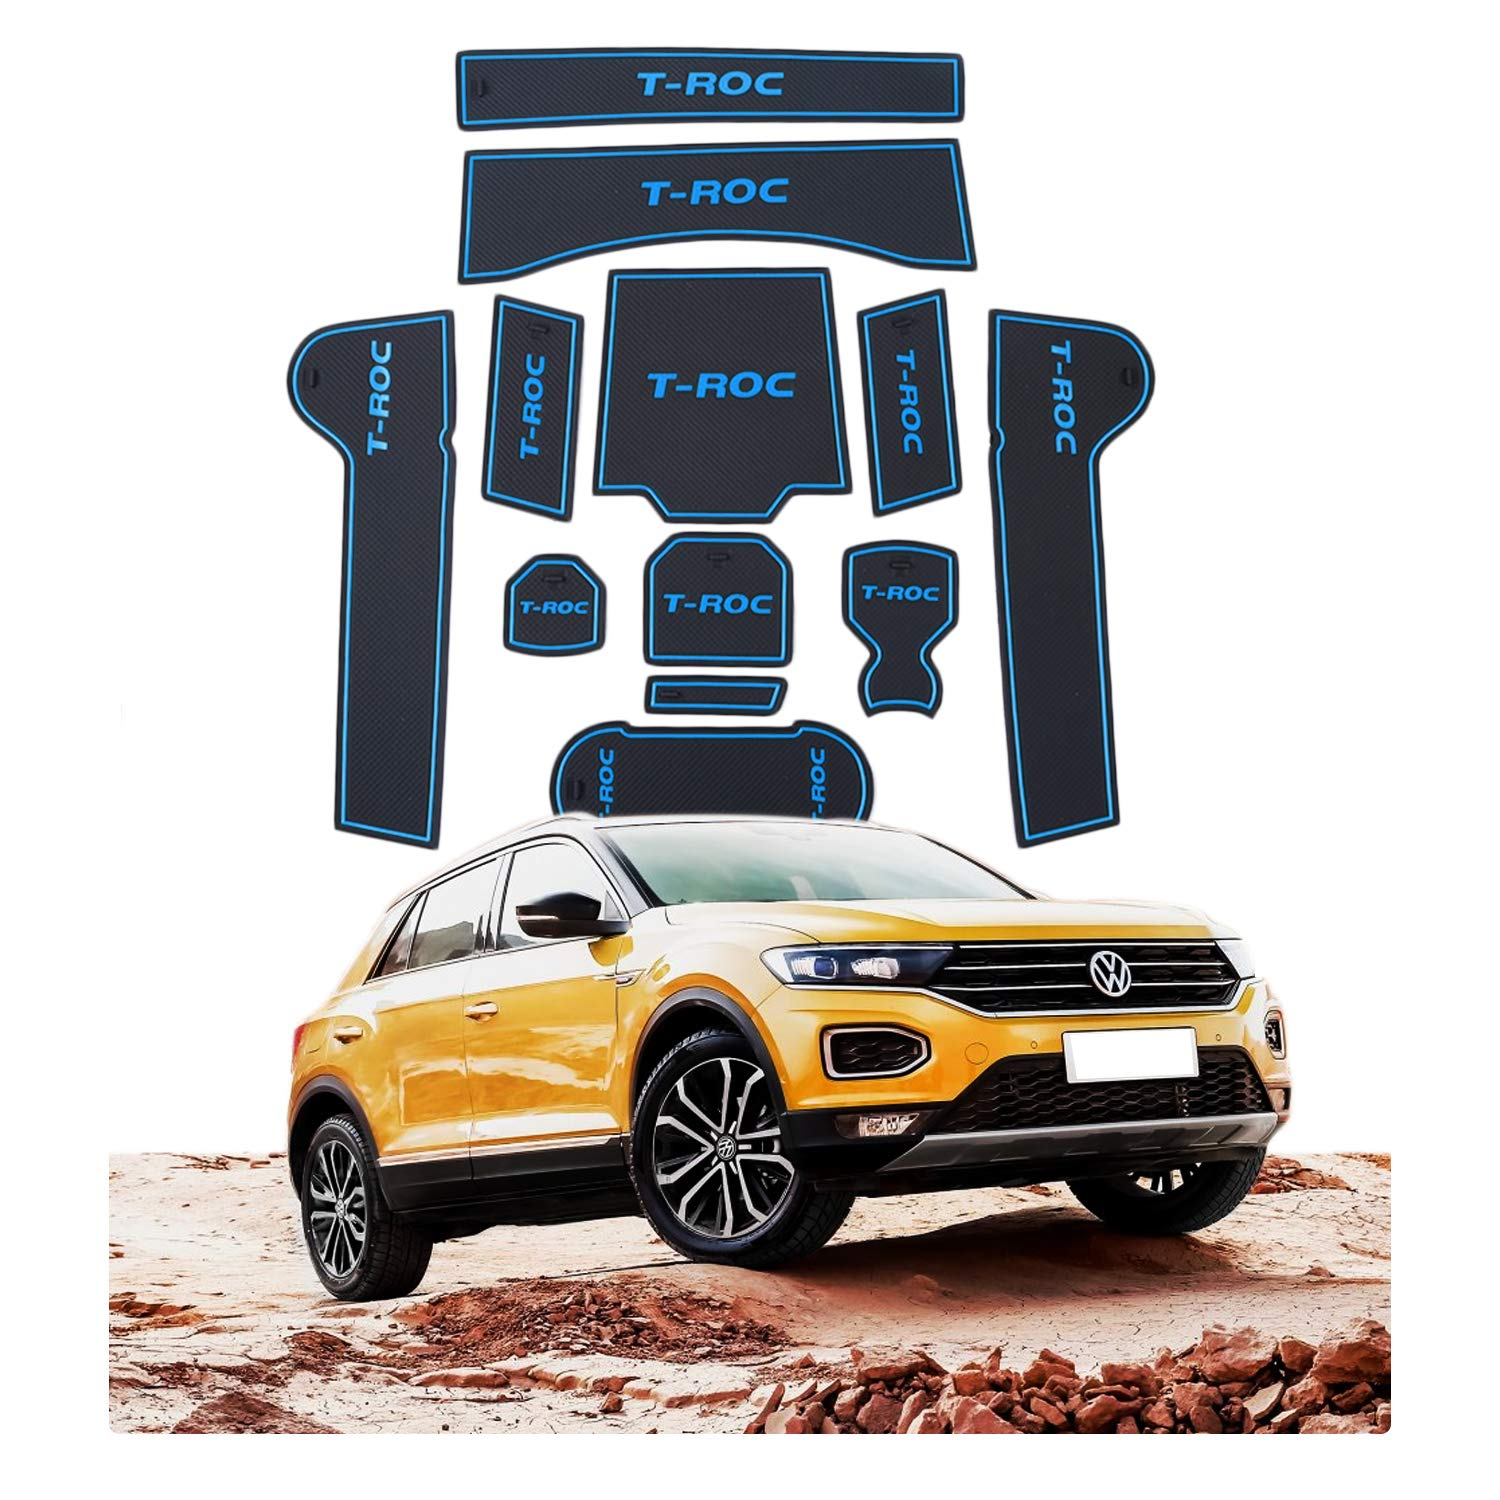 YEE PIN Car Door Nut Anti Slip Pad Compatible with Volkswagen VW T-ROC SUV 2017-2019 Car Interior Water Cup Storage Box Non-Slip Mat Rubber Mat Non-Slip Mats